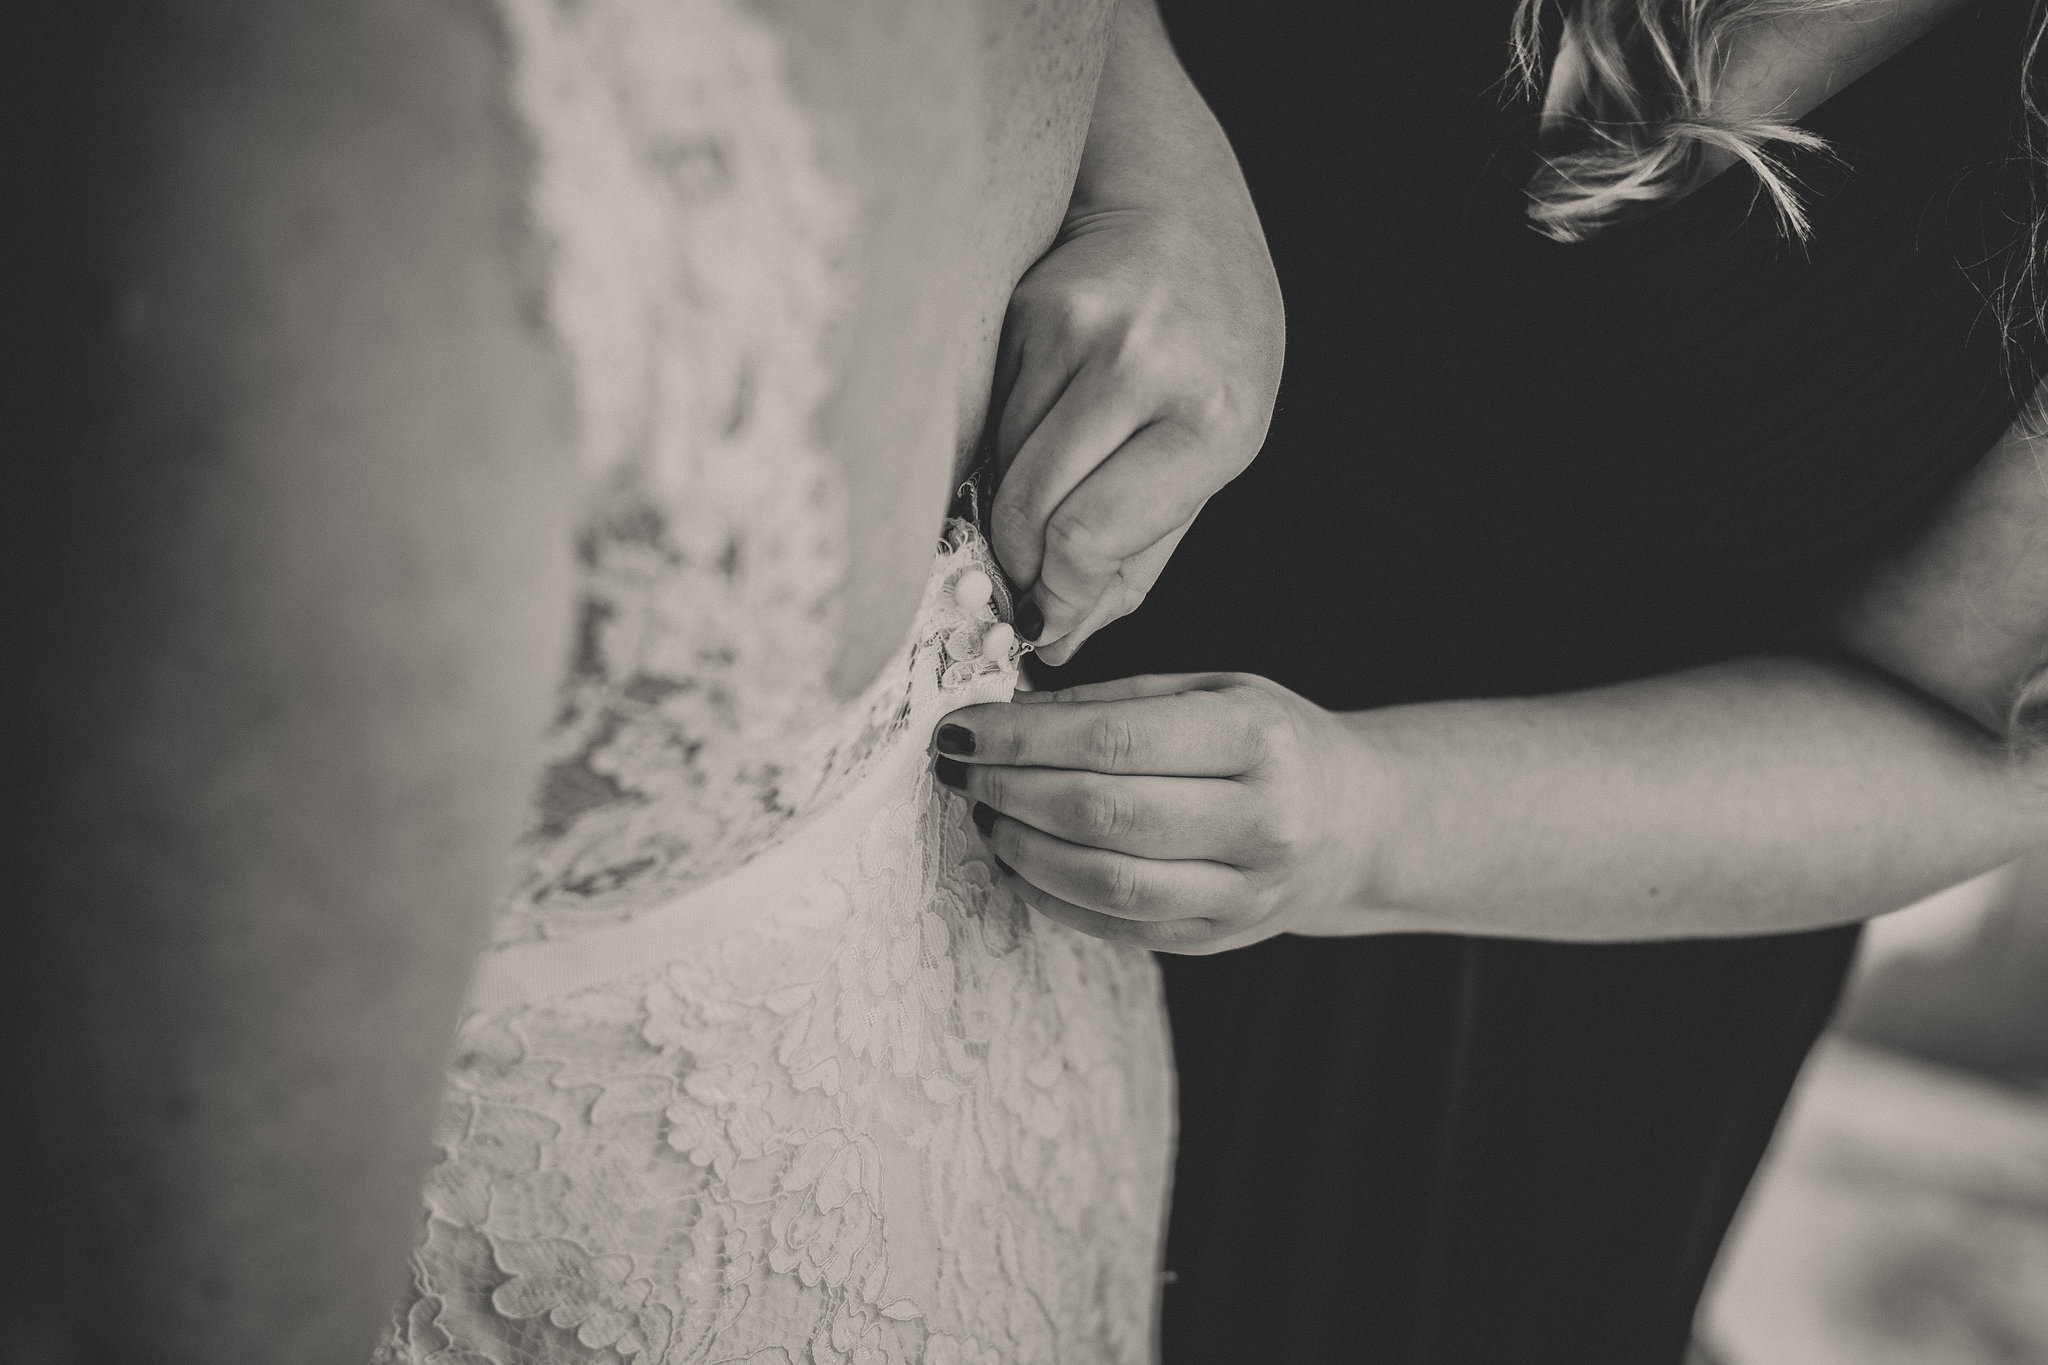 bridal gown from behind